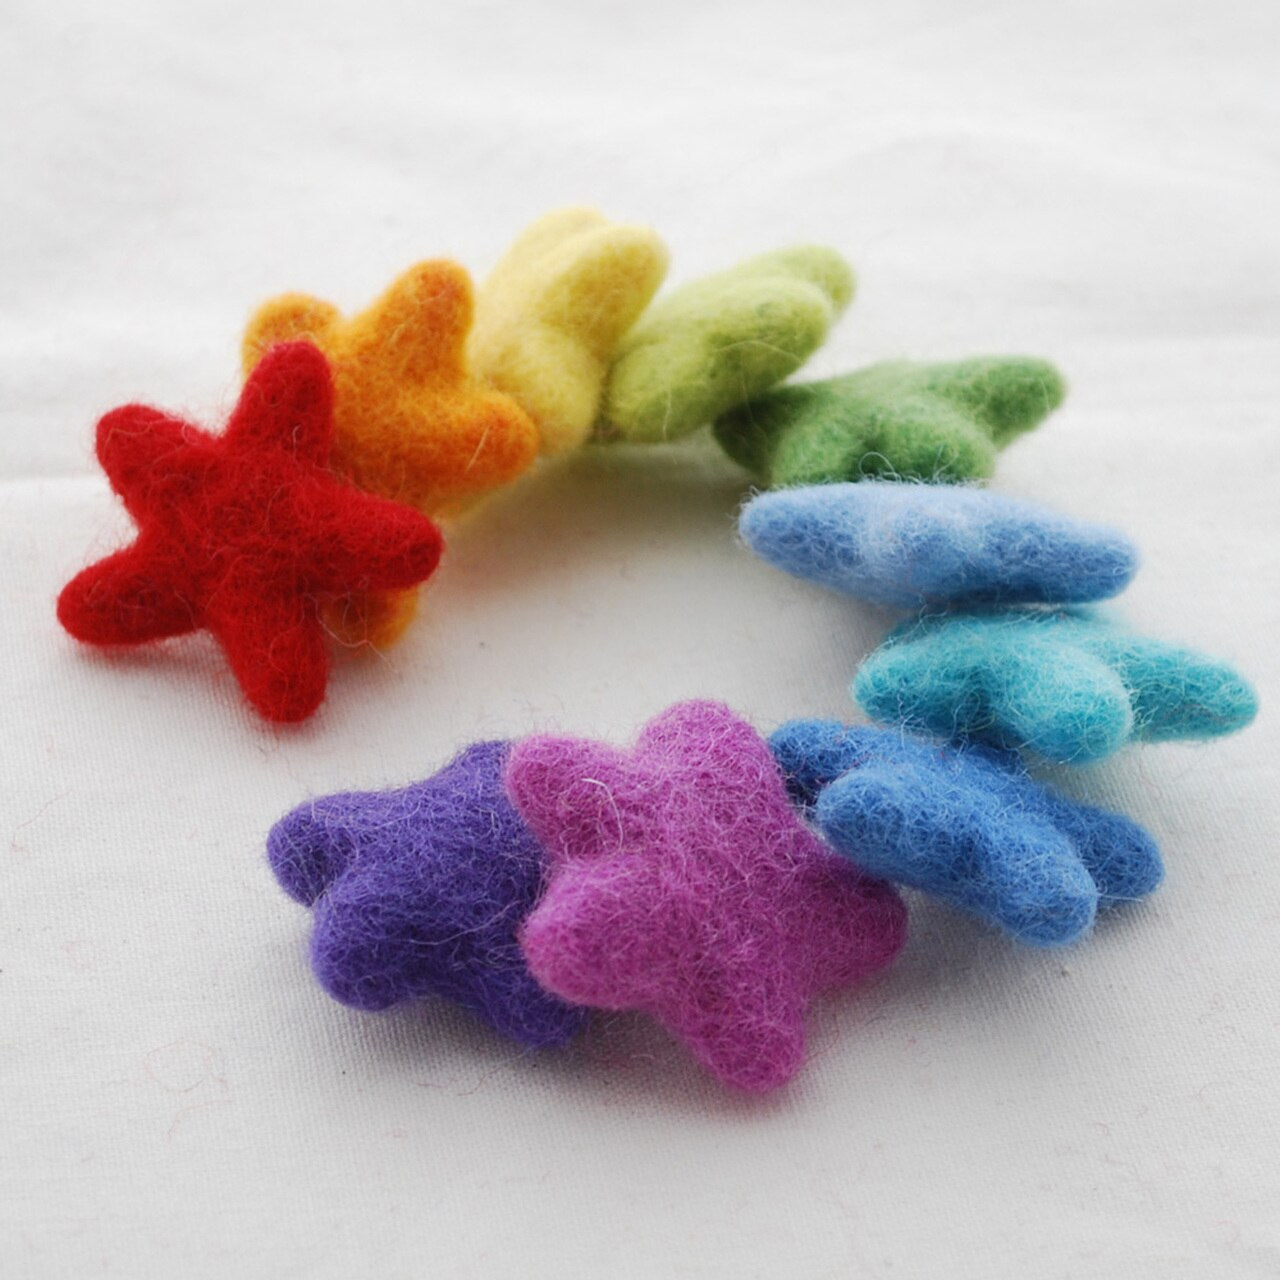 Handmade 100% Wool Stars - 10 stars - approx 3.5cm - Rainbow Colours